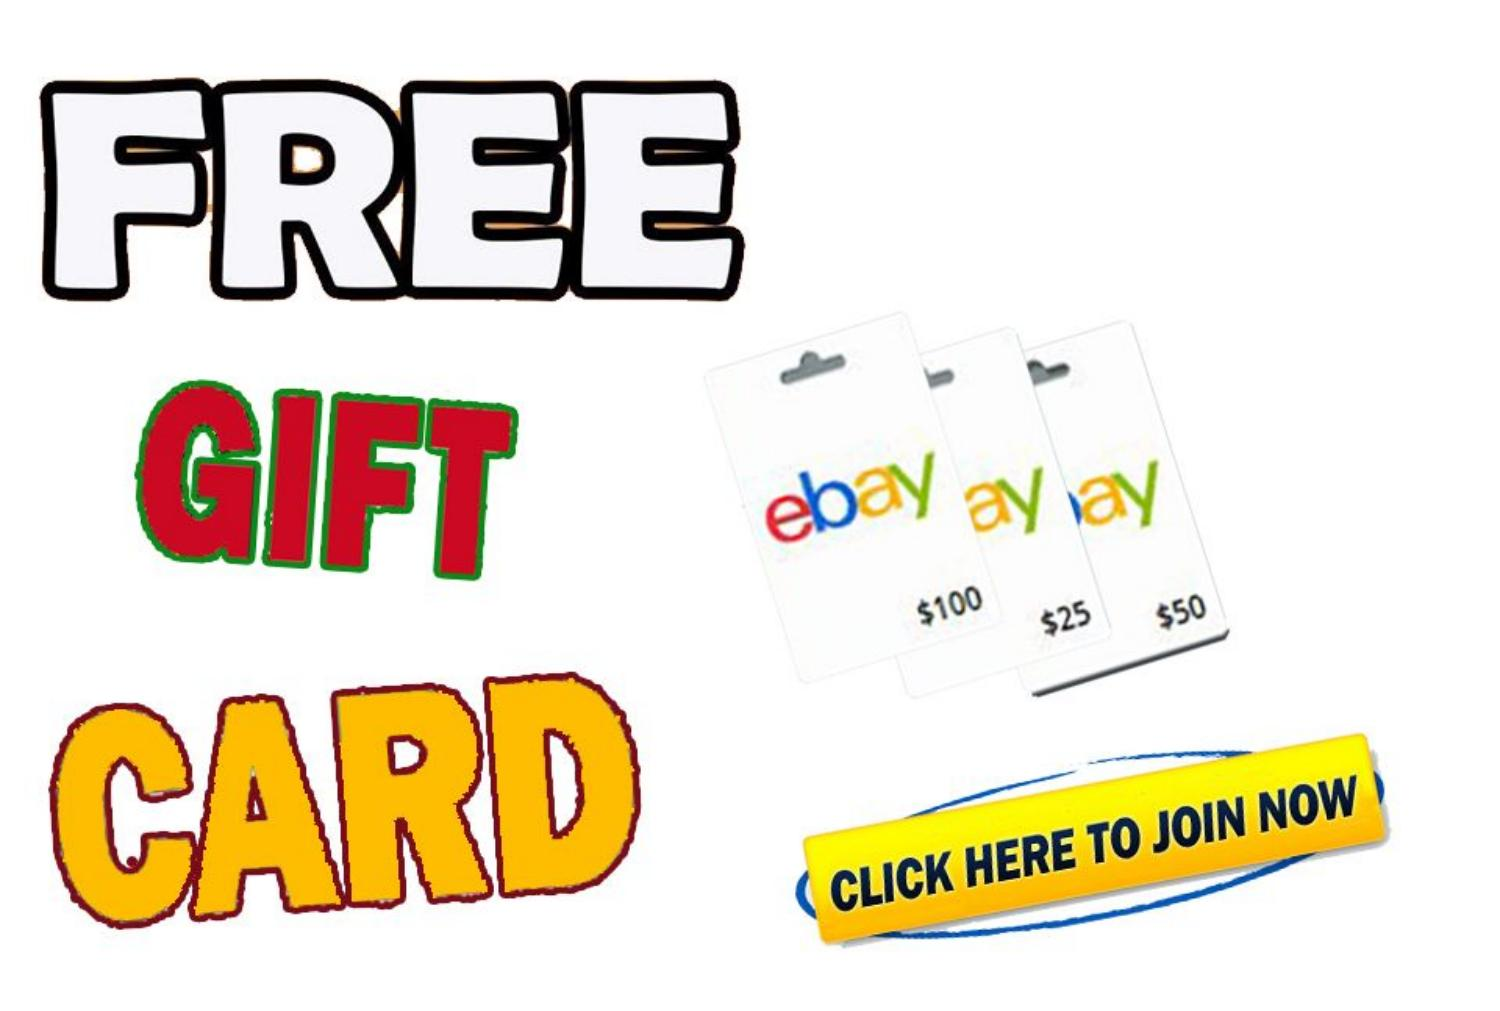 Free Ebay Gift Card 2020 Easy 50 Ebay Gift Card By Giftcards2020 Issuu